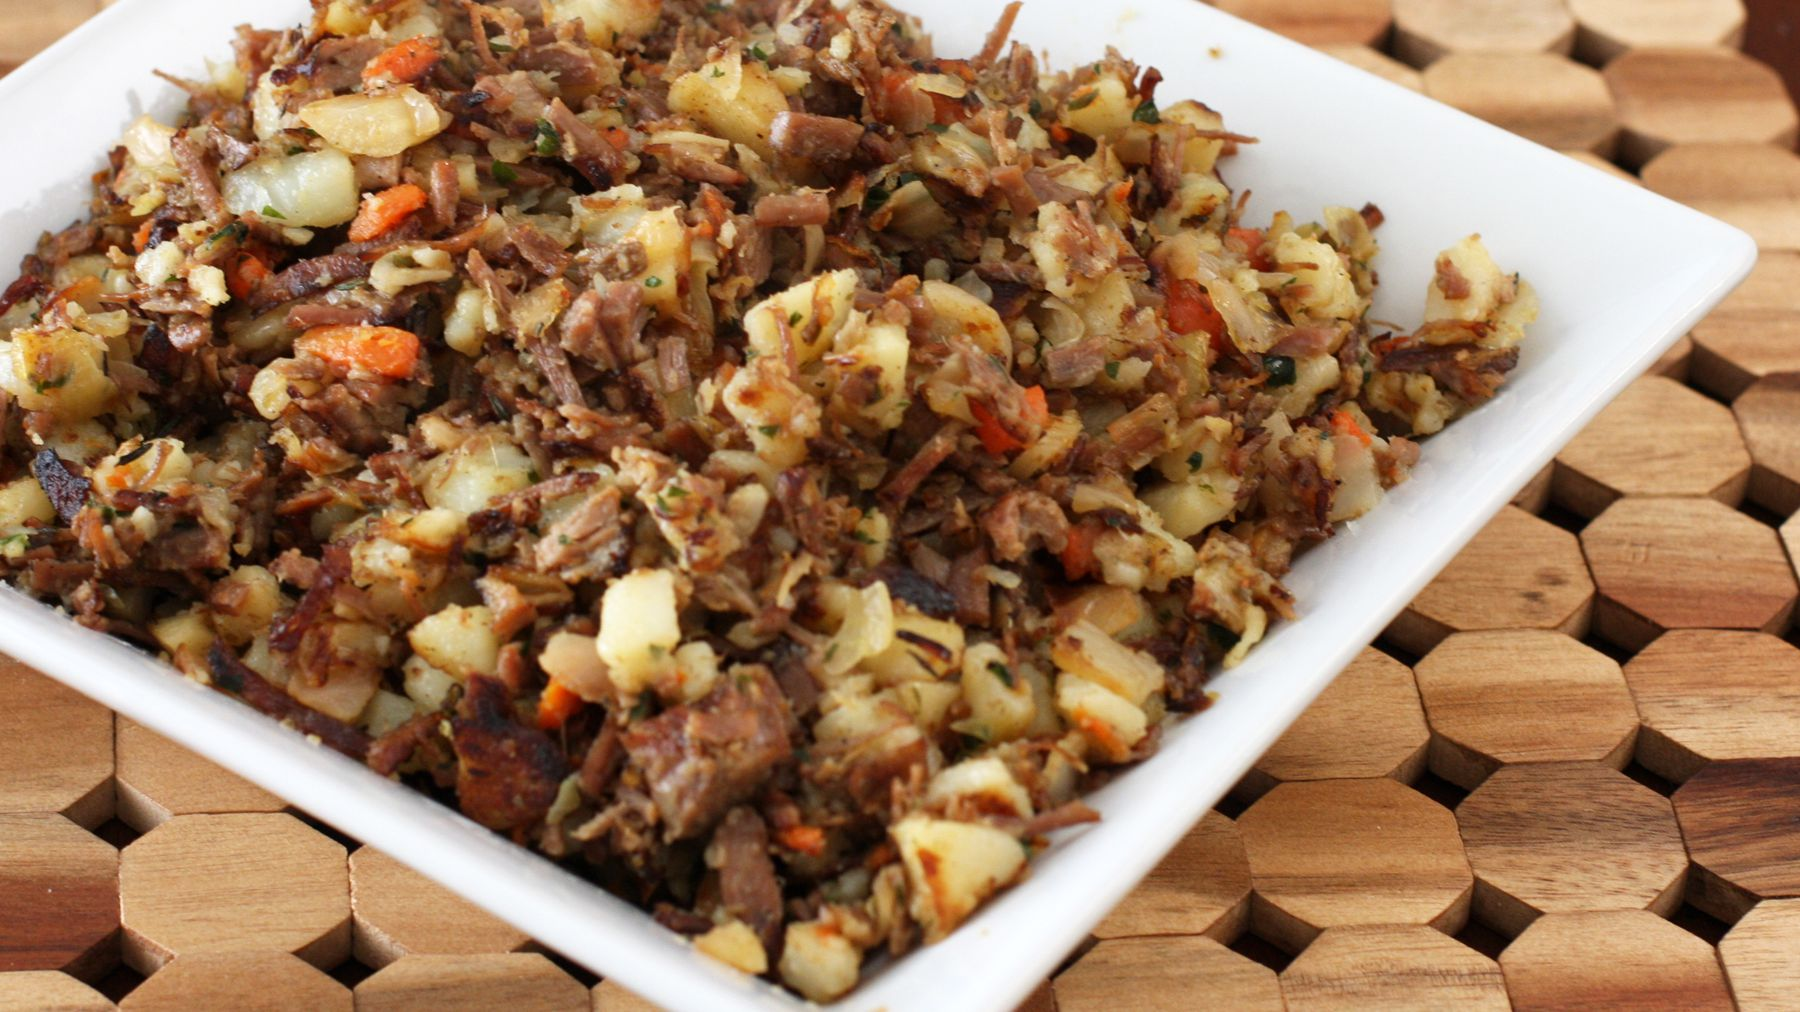 Leftover Corned Beef Hash With Cabbage Recipe